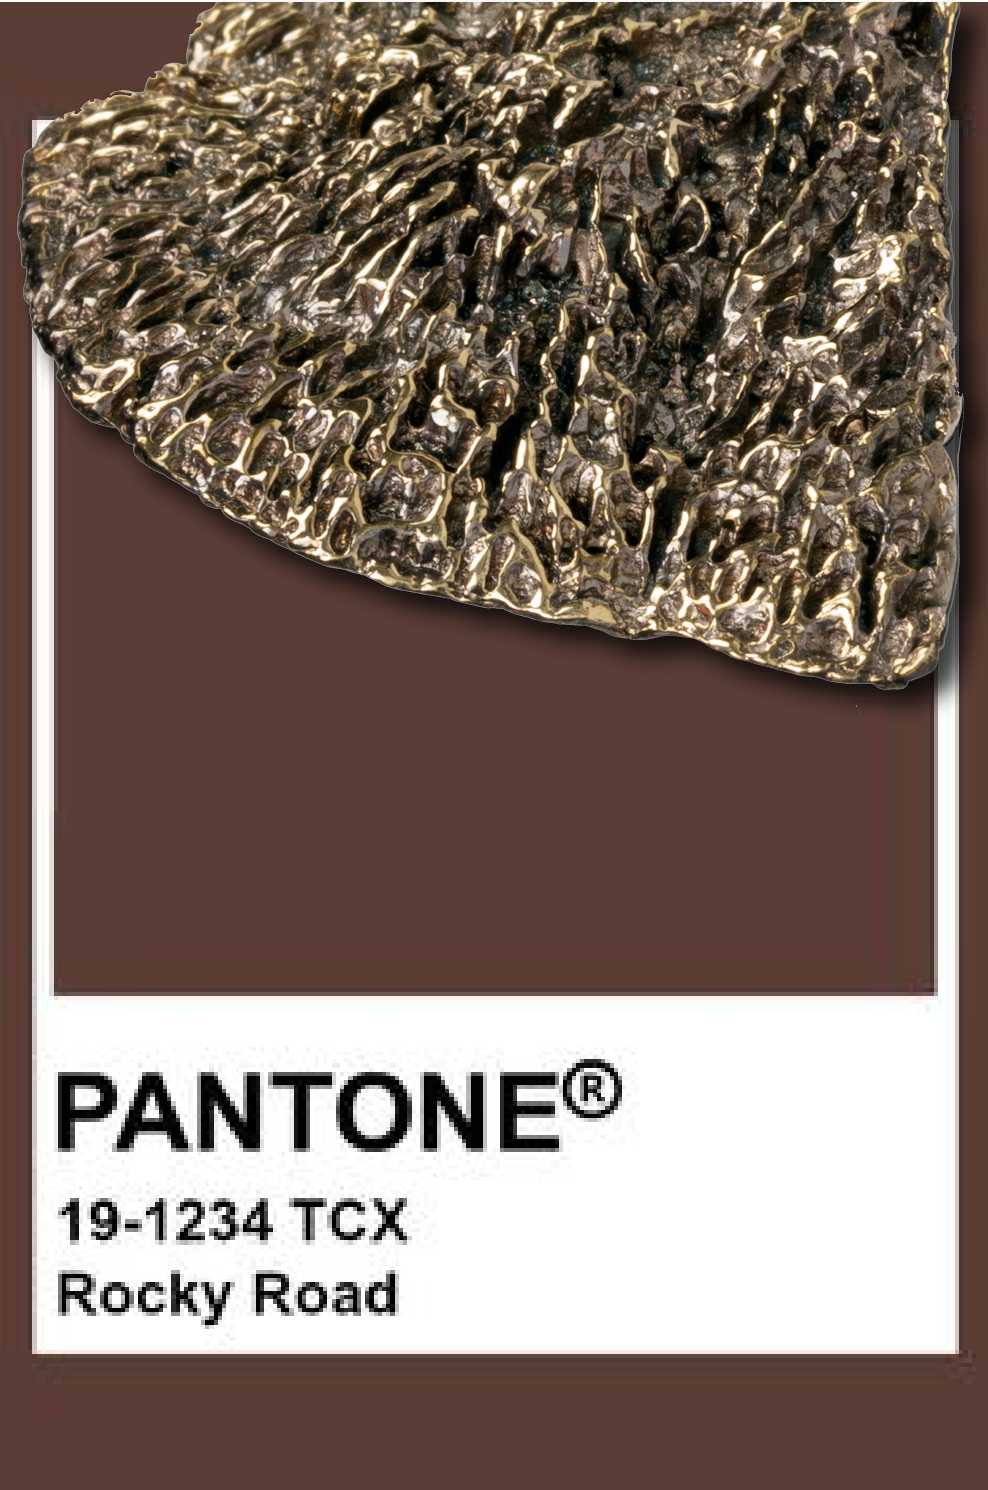 Pantone Color of The Year: PullCast Edition pantone color of the year 2020 Pantone Color of The Year 2020: PullCast Edition Patones Pullcast 02 e1576076757912